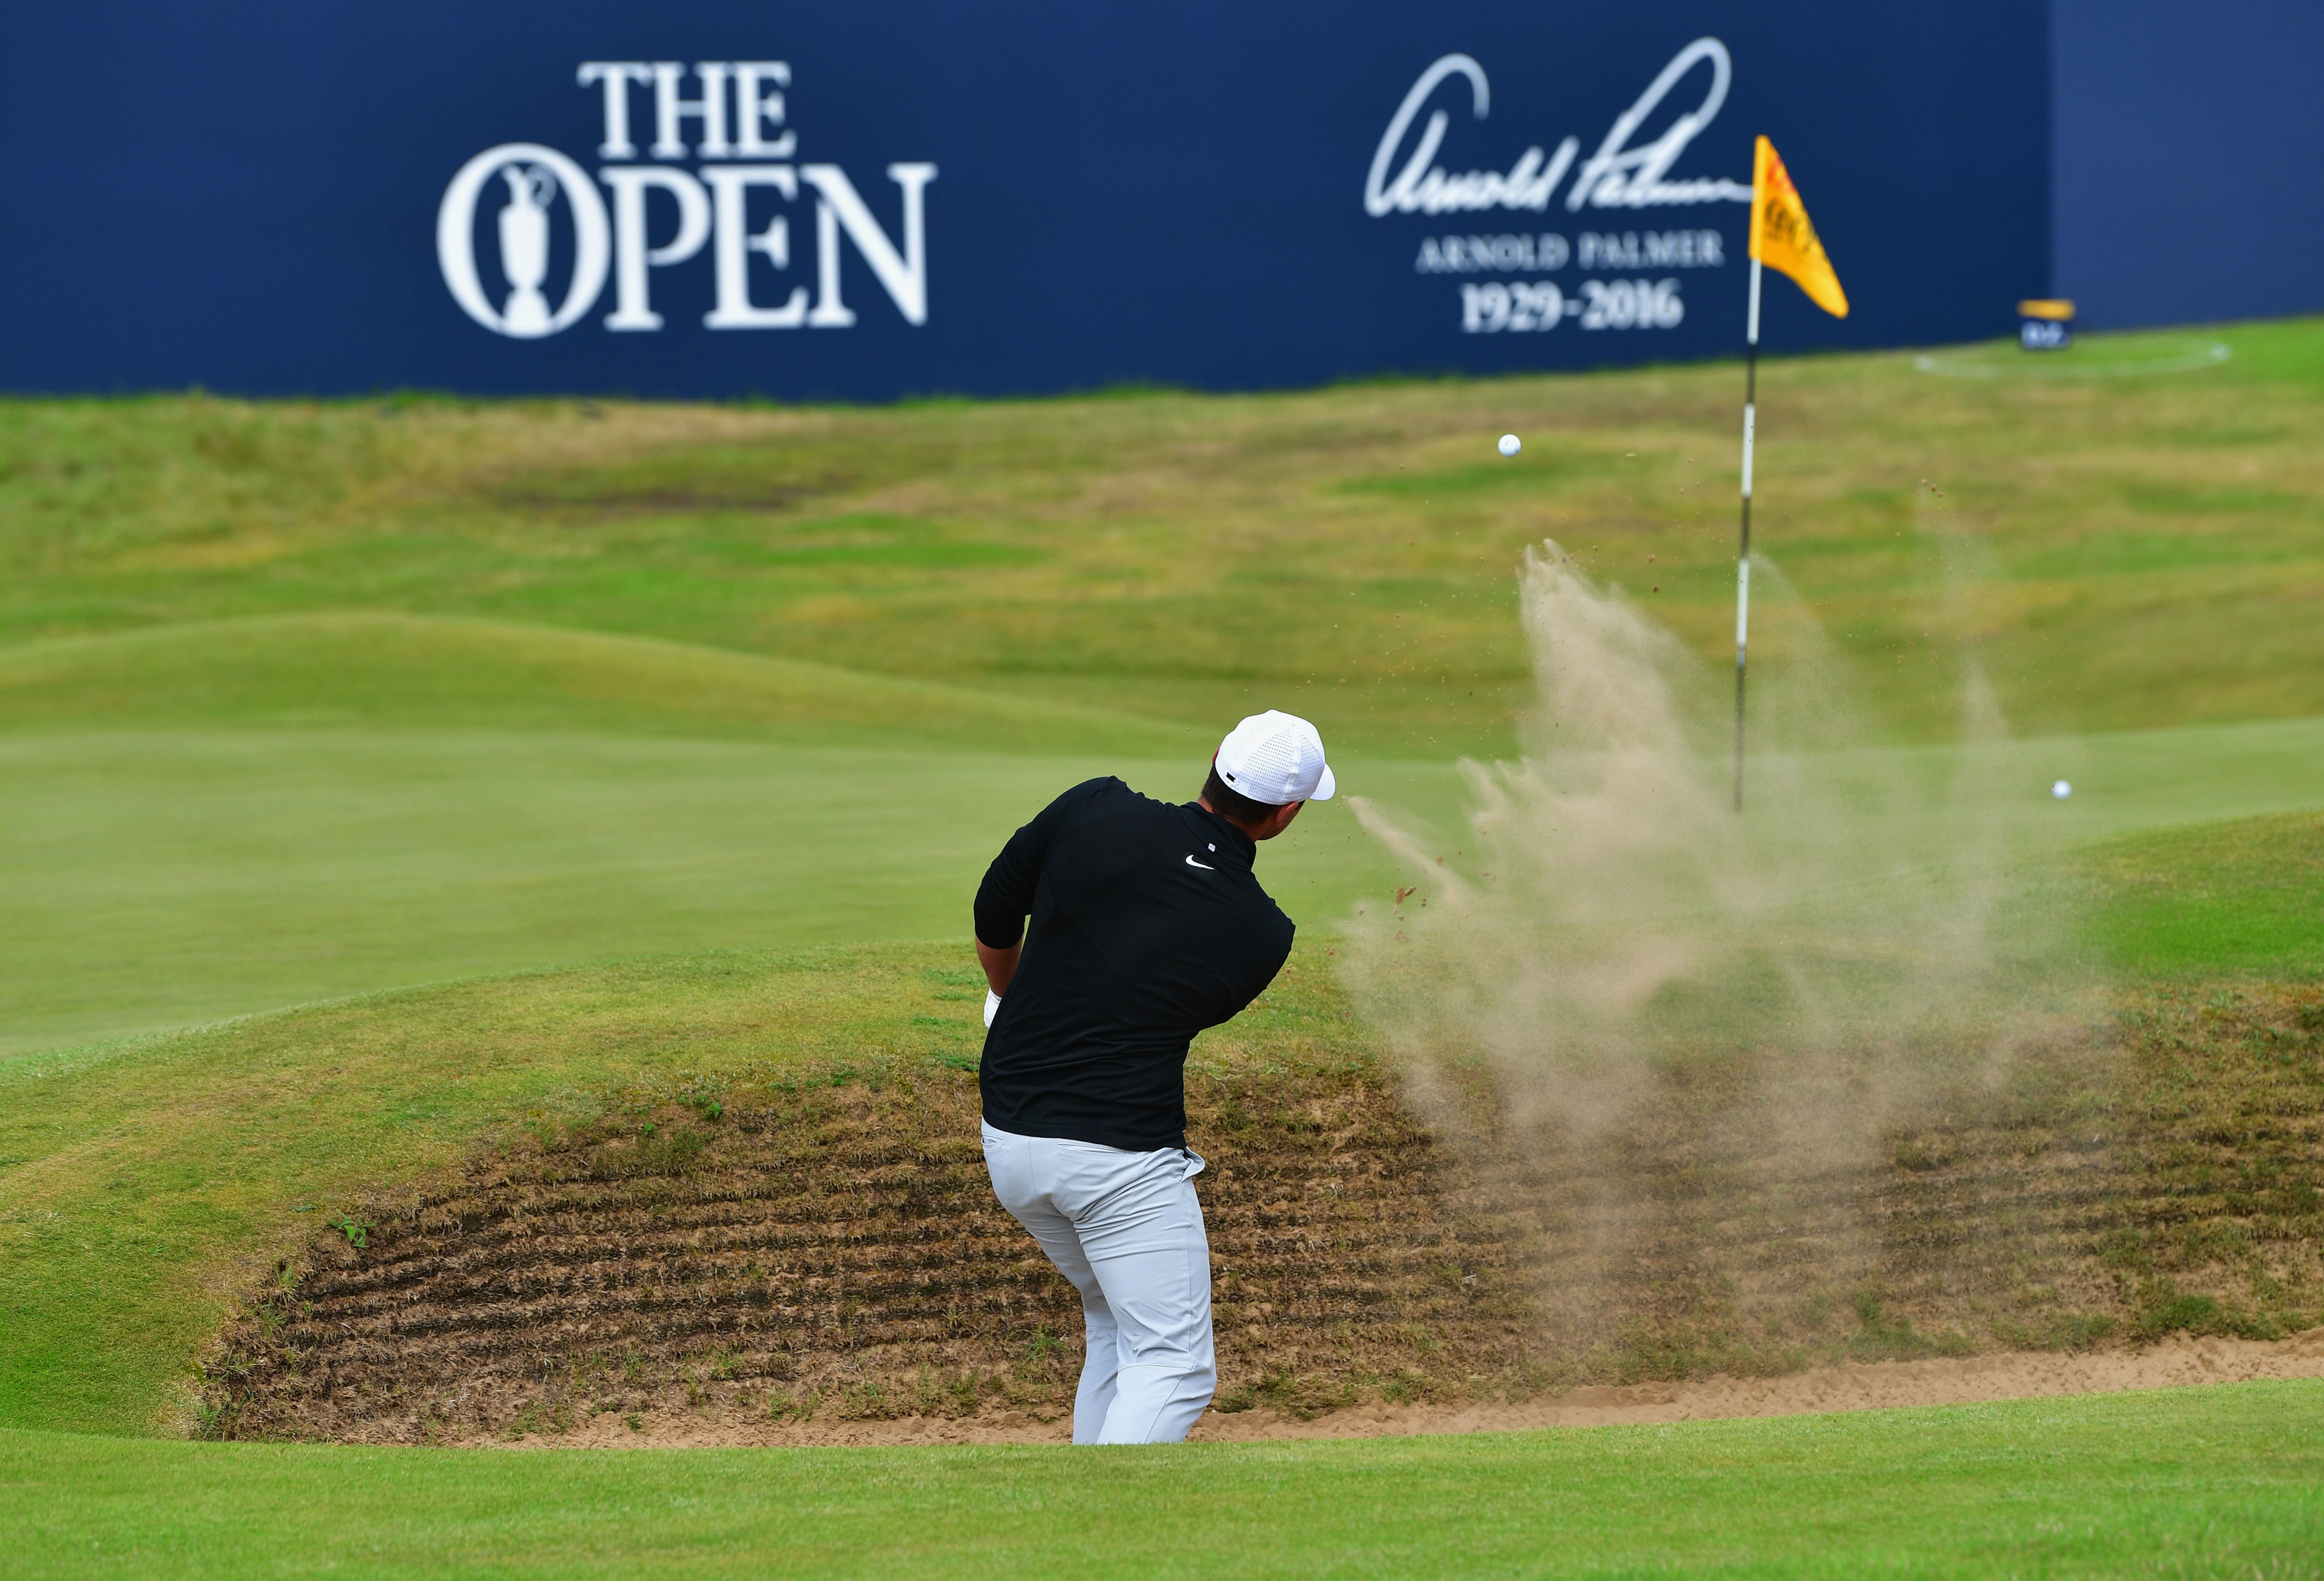 Brooks Koepka continued the red hot form from his US Open win at Royal Birkdale.